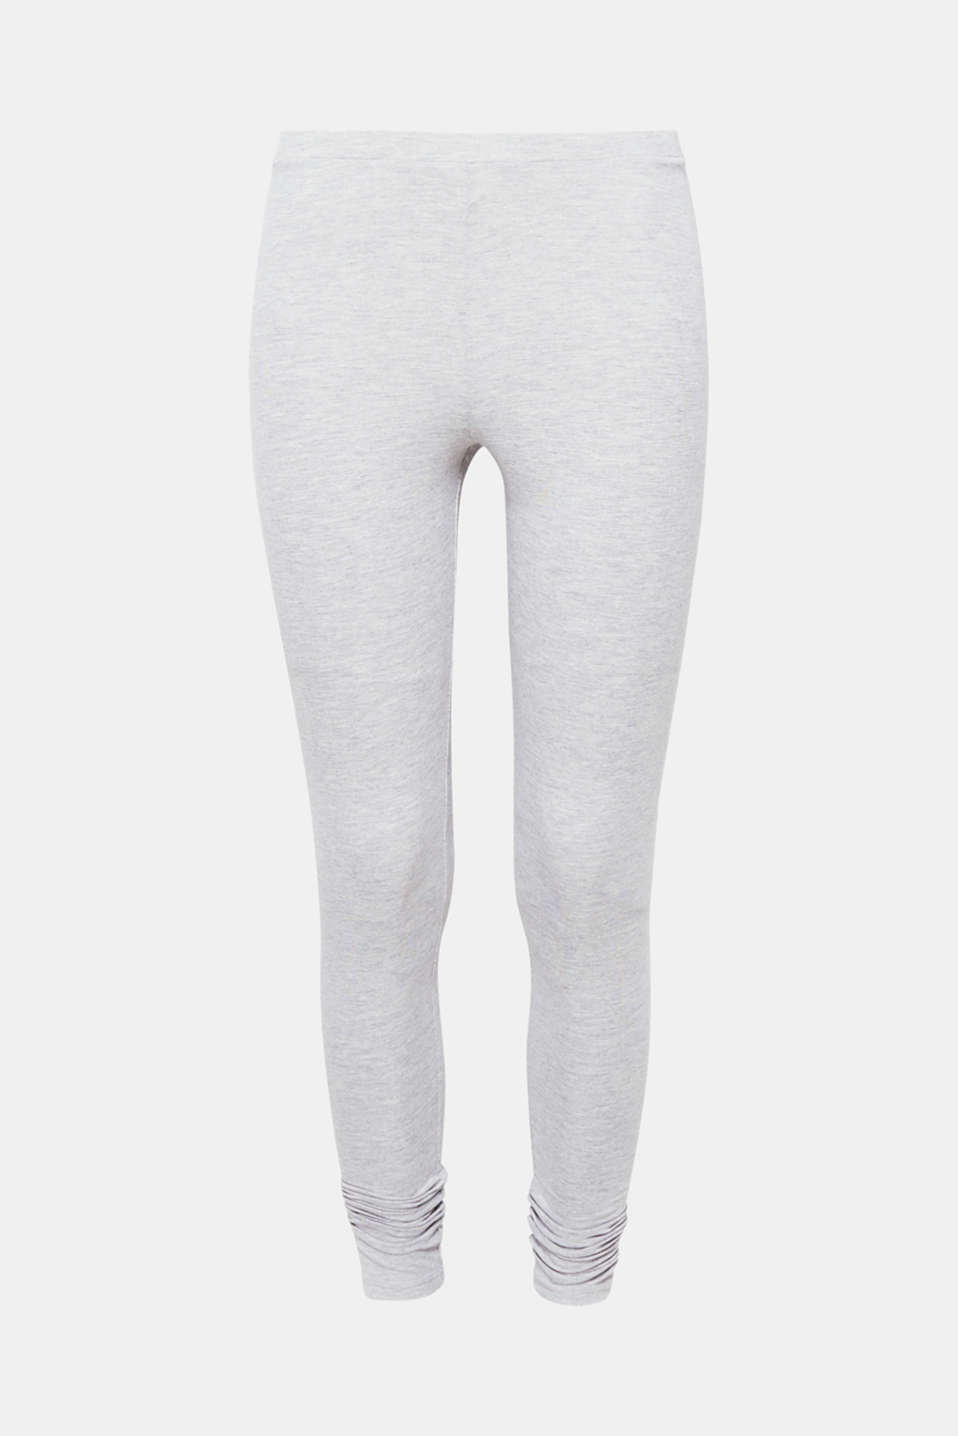 These grey melange leggings with premium organic cotton are an indispensable basic piece.